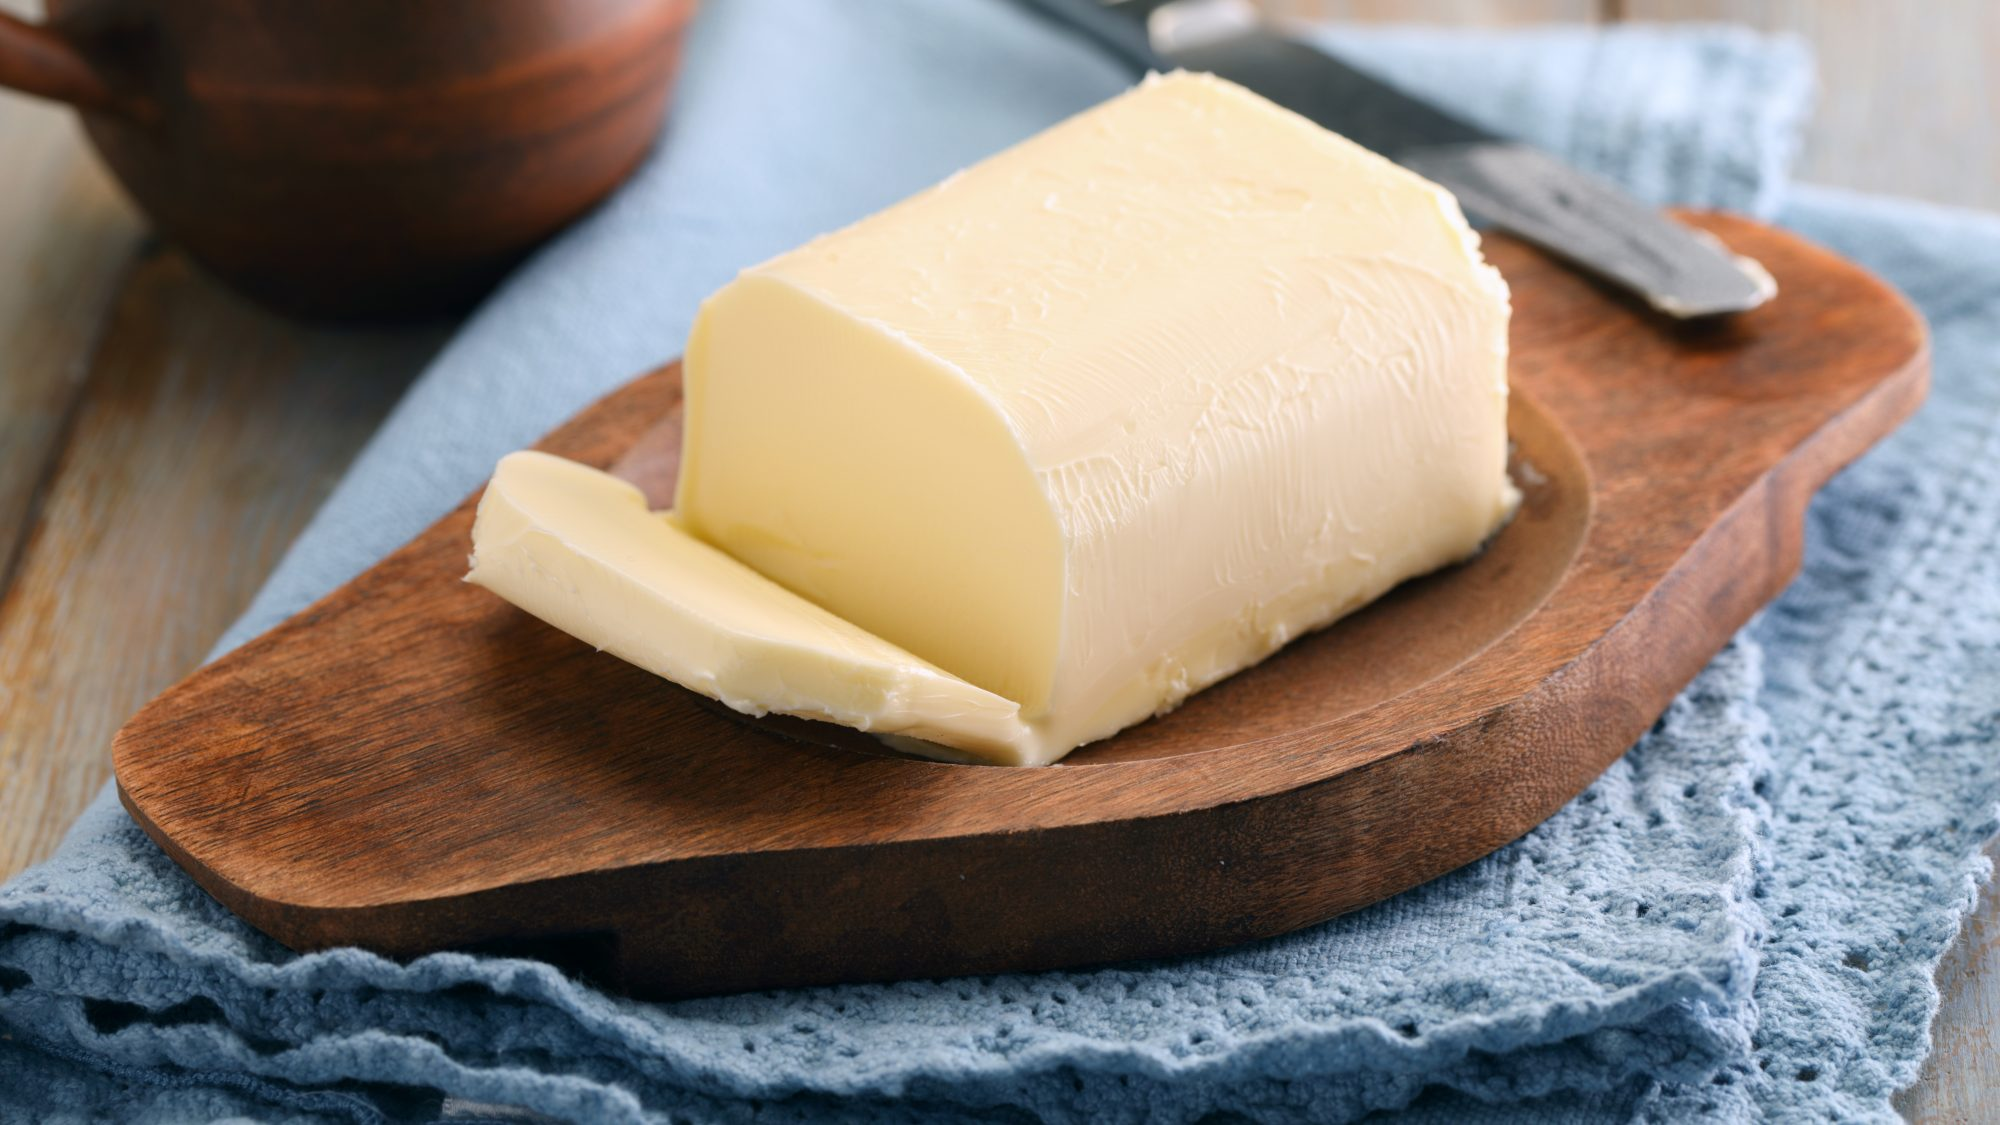 Types of butter guide - different kinds of butter (cut butter)